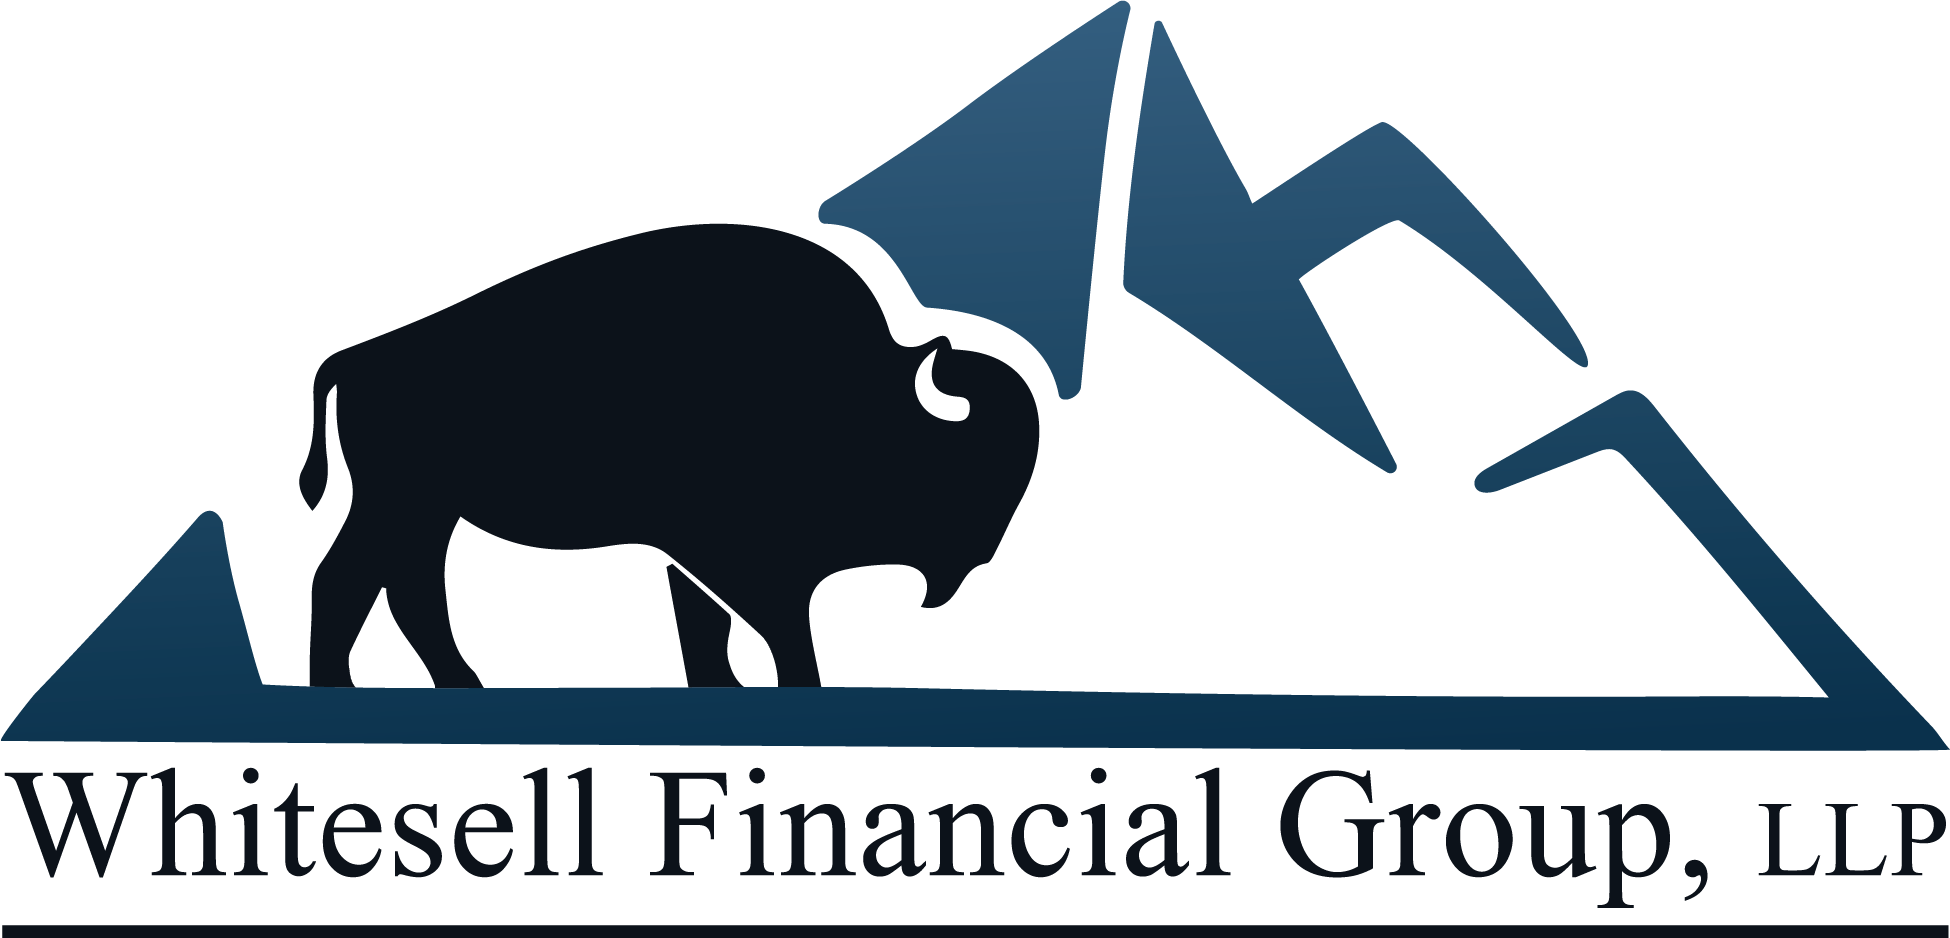 Whitesell Financial Group | Midwest Wealth Managers